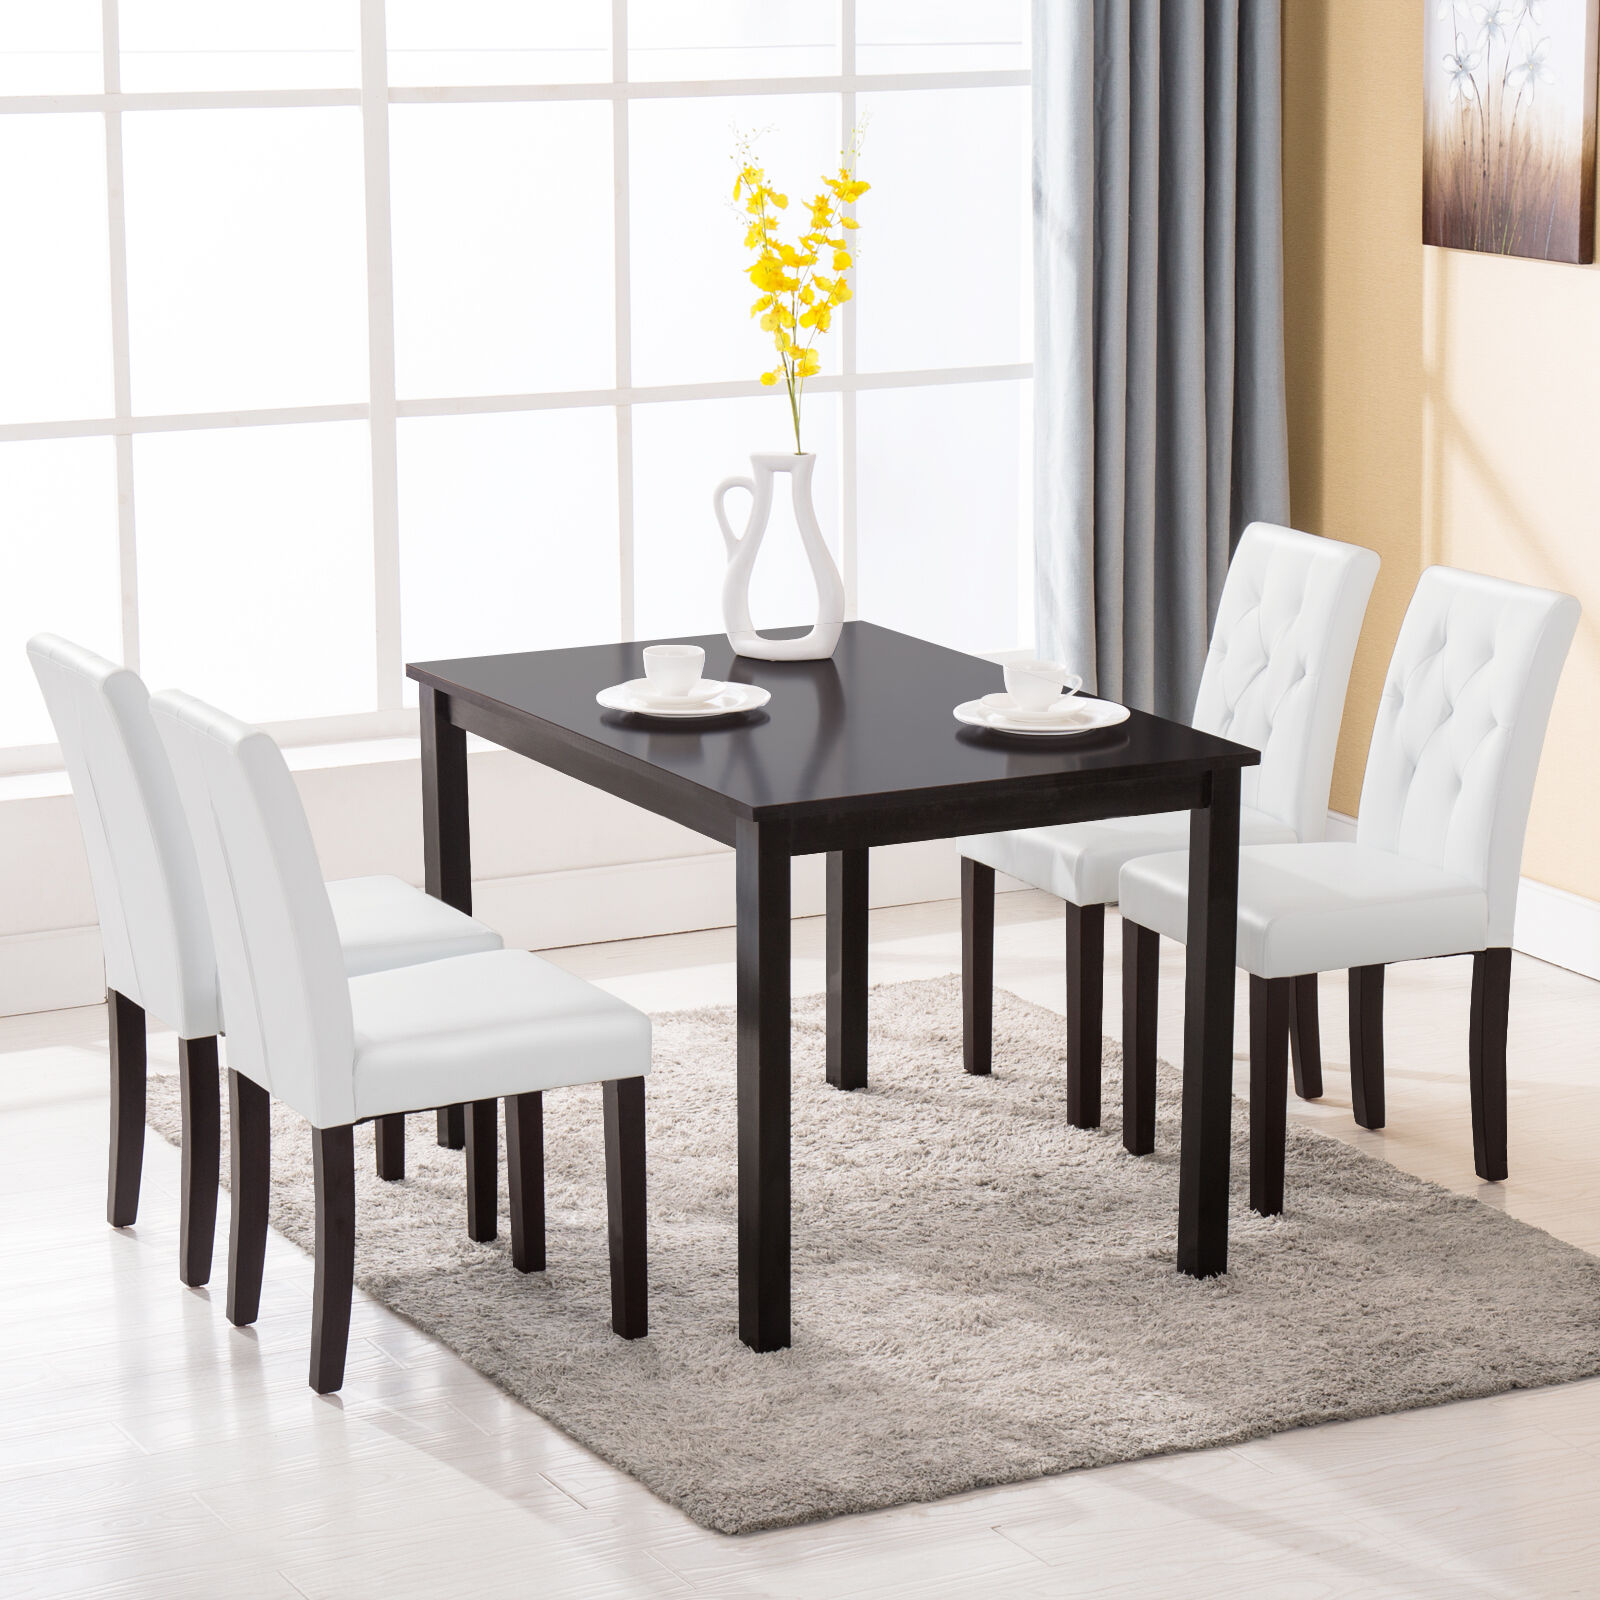 5 Piece Dining Table Set 4 Chairs Room Kitchen Dinette ...